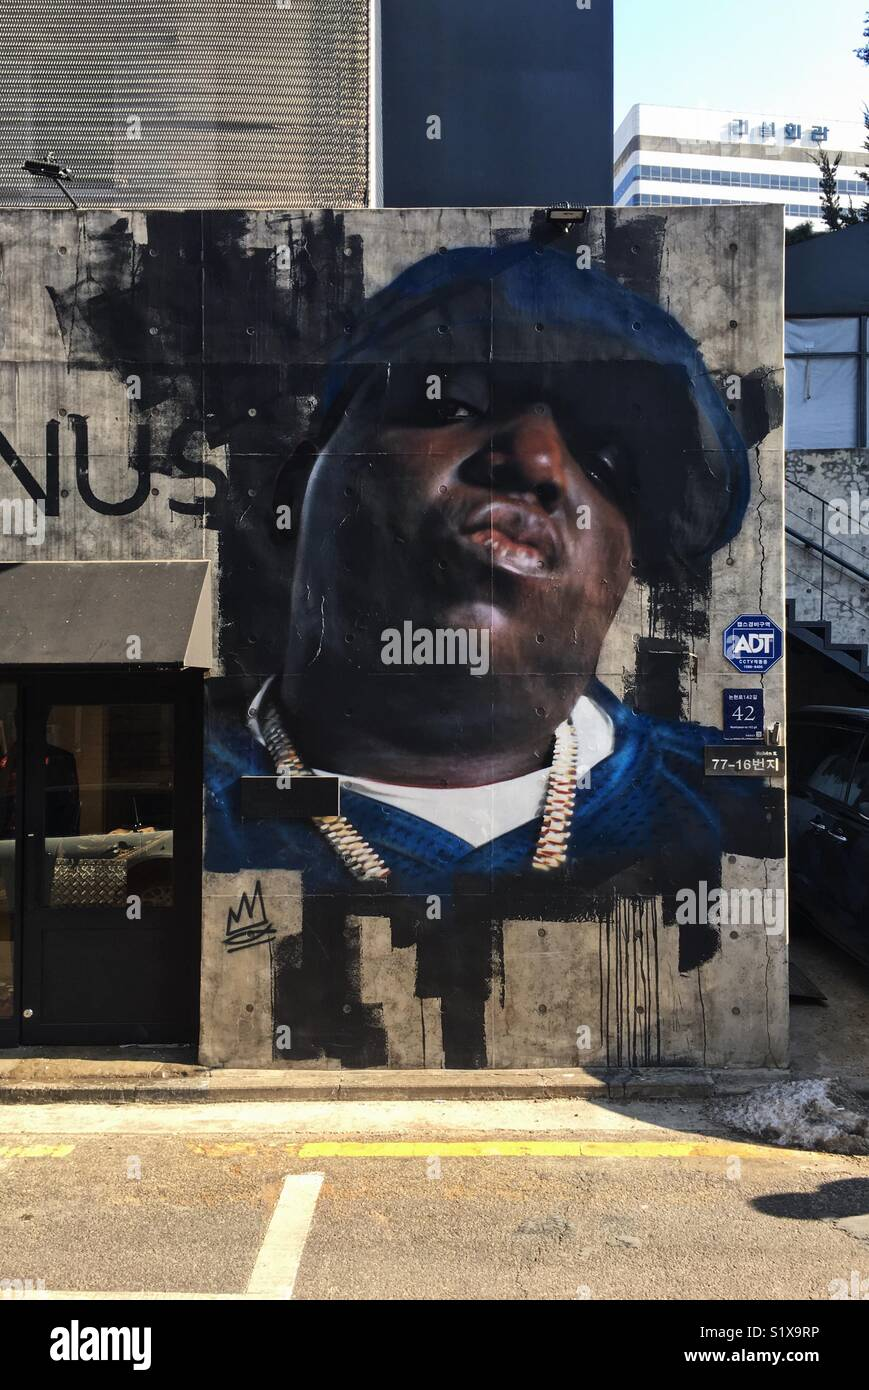 A street art painting of deceased musician and rapper Biggie Smalls in Seoul, South Korea - Stock Image